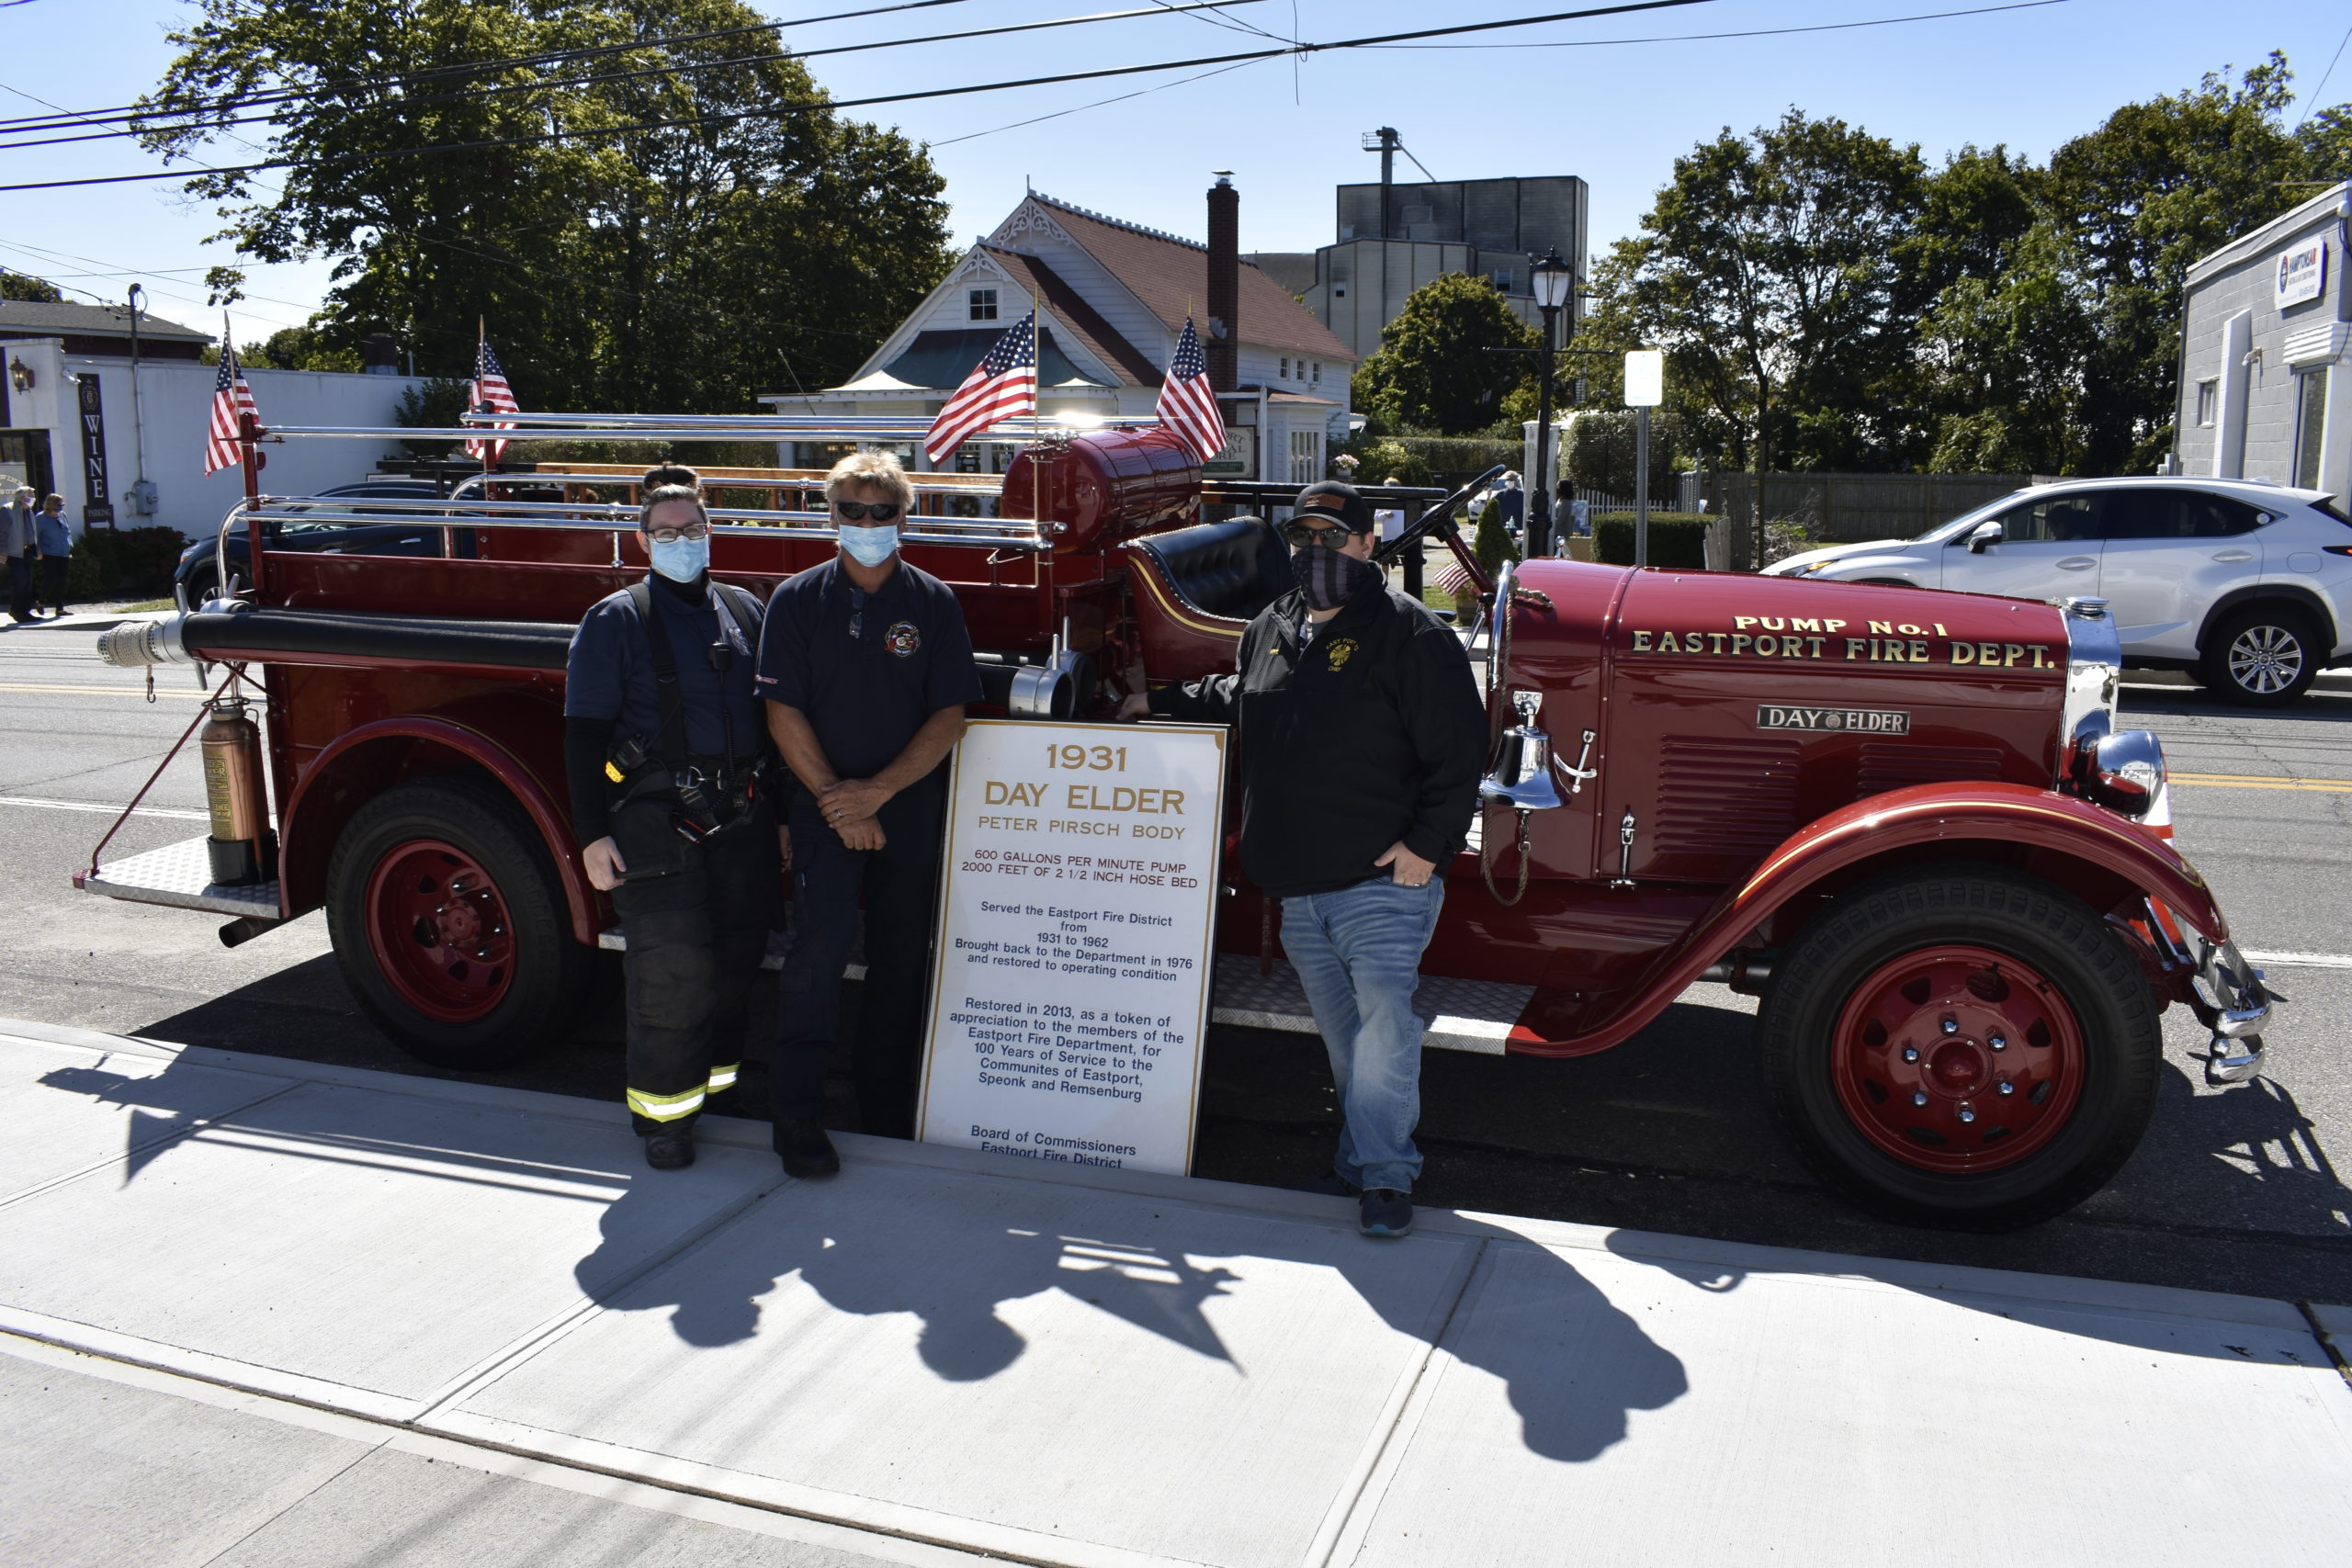 2nd Lt. Melissa Rankin, firefighter Roy Yeagar and Chief Mike Tortorice of the Eastport Fire Department showed off a vintage 1931 Day Elder firetruck.